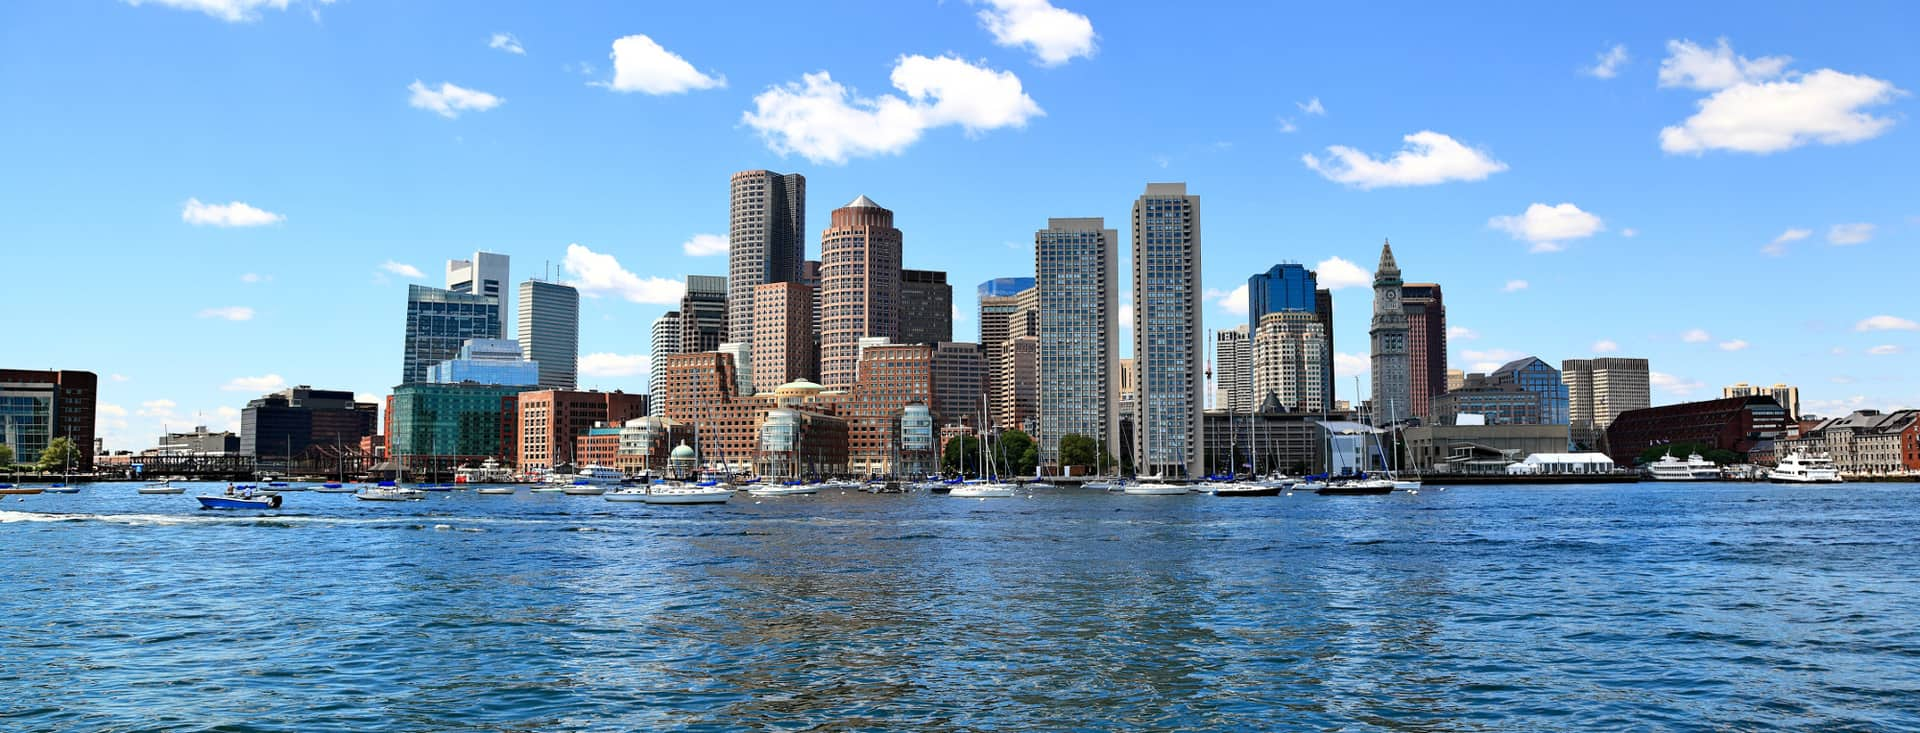 Boston waterfront view